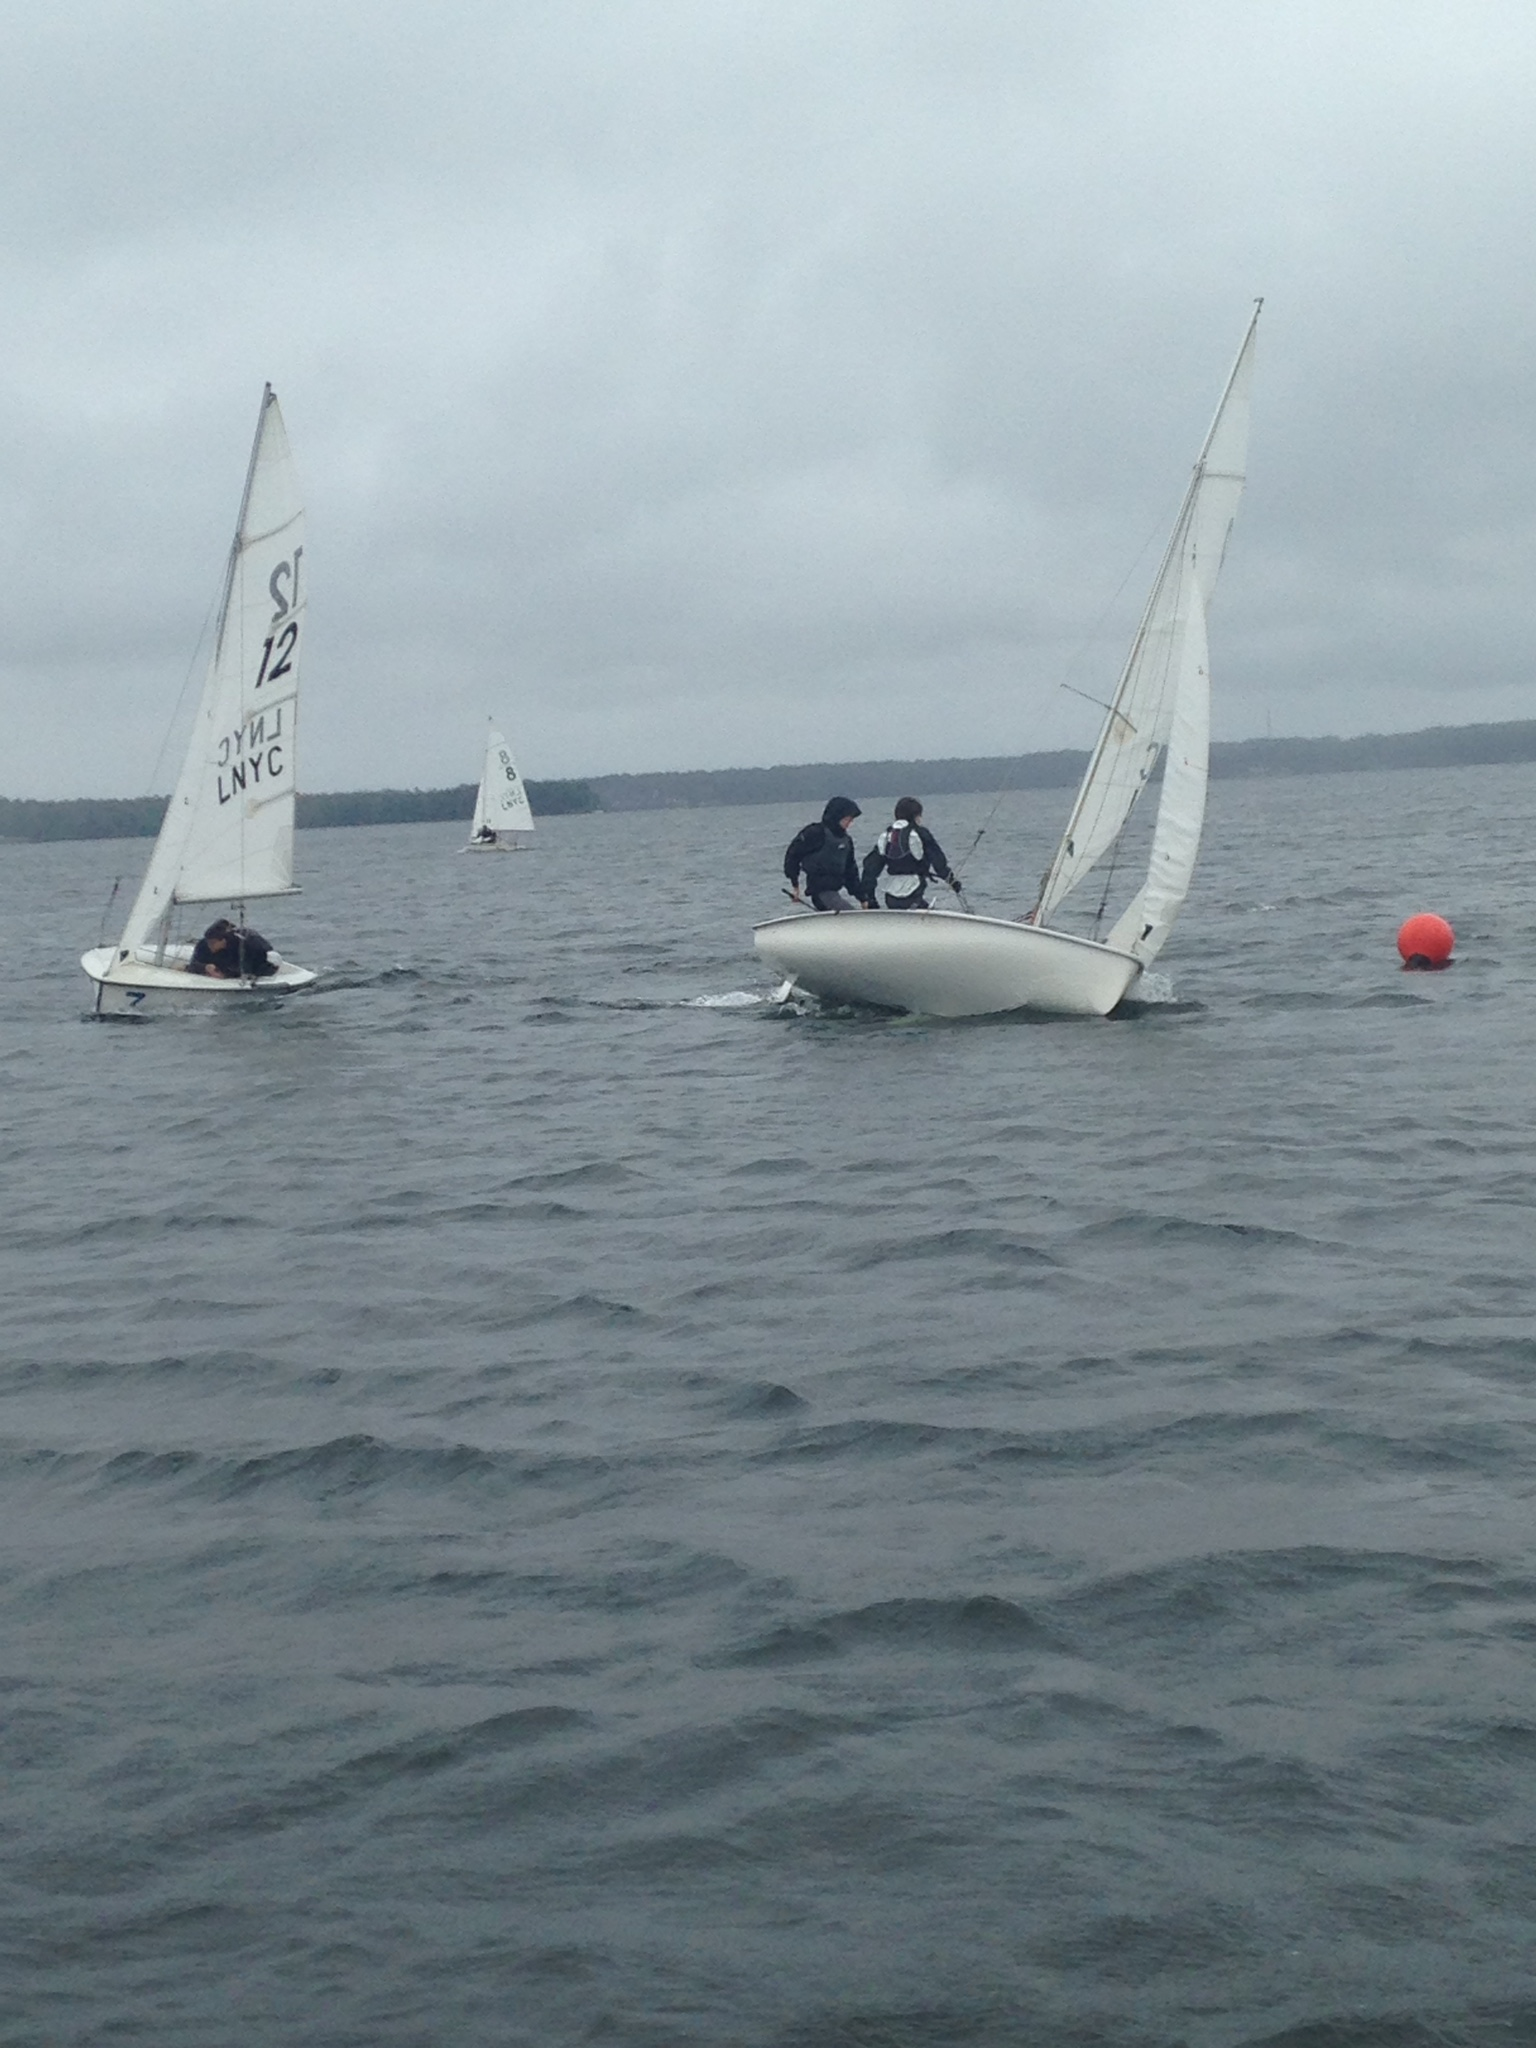 Dinghy practice